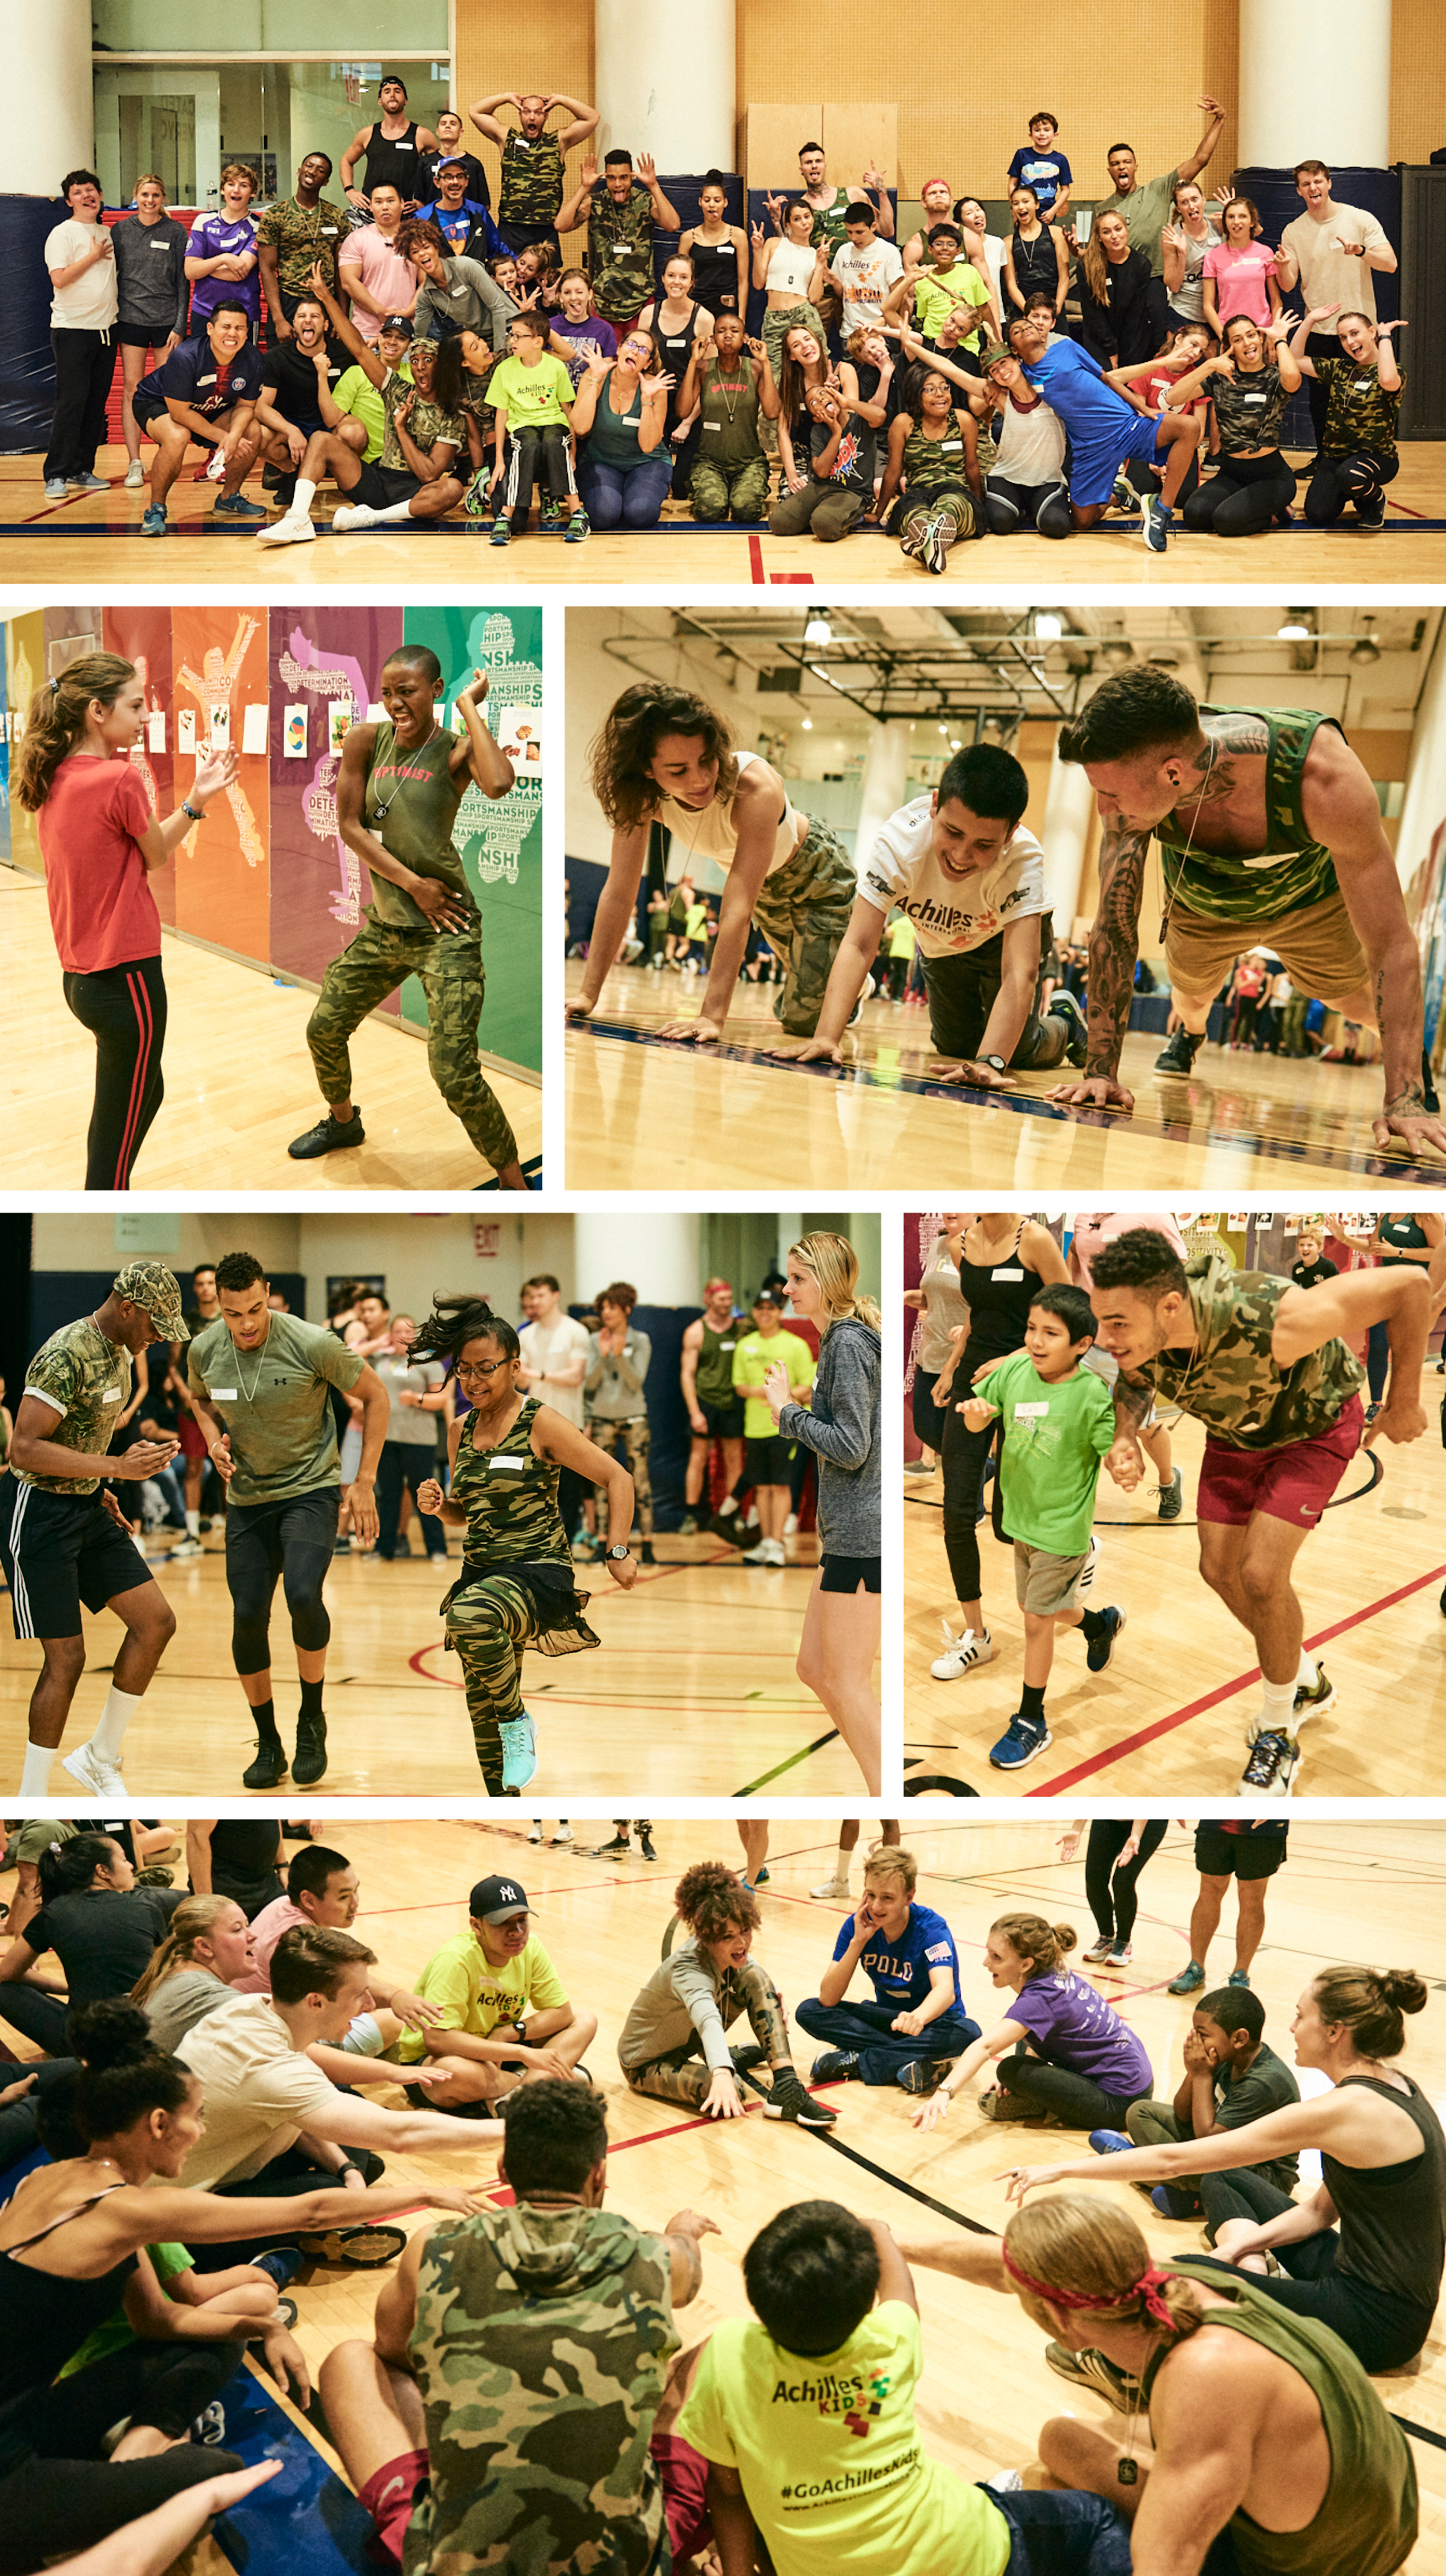 Just a few of the amazing moments from the Achilles Kids Boot Camp workout with the awesome volunteers from Wilhelmina! ( Photos courtesy of James Farrell, www.jamesfarrellphoto.com )